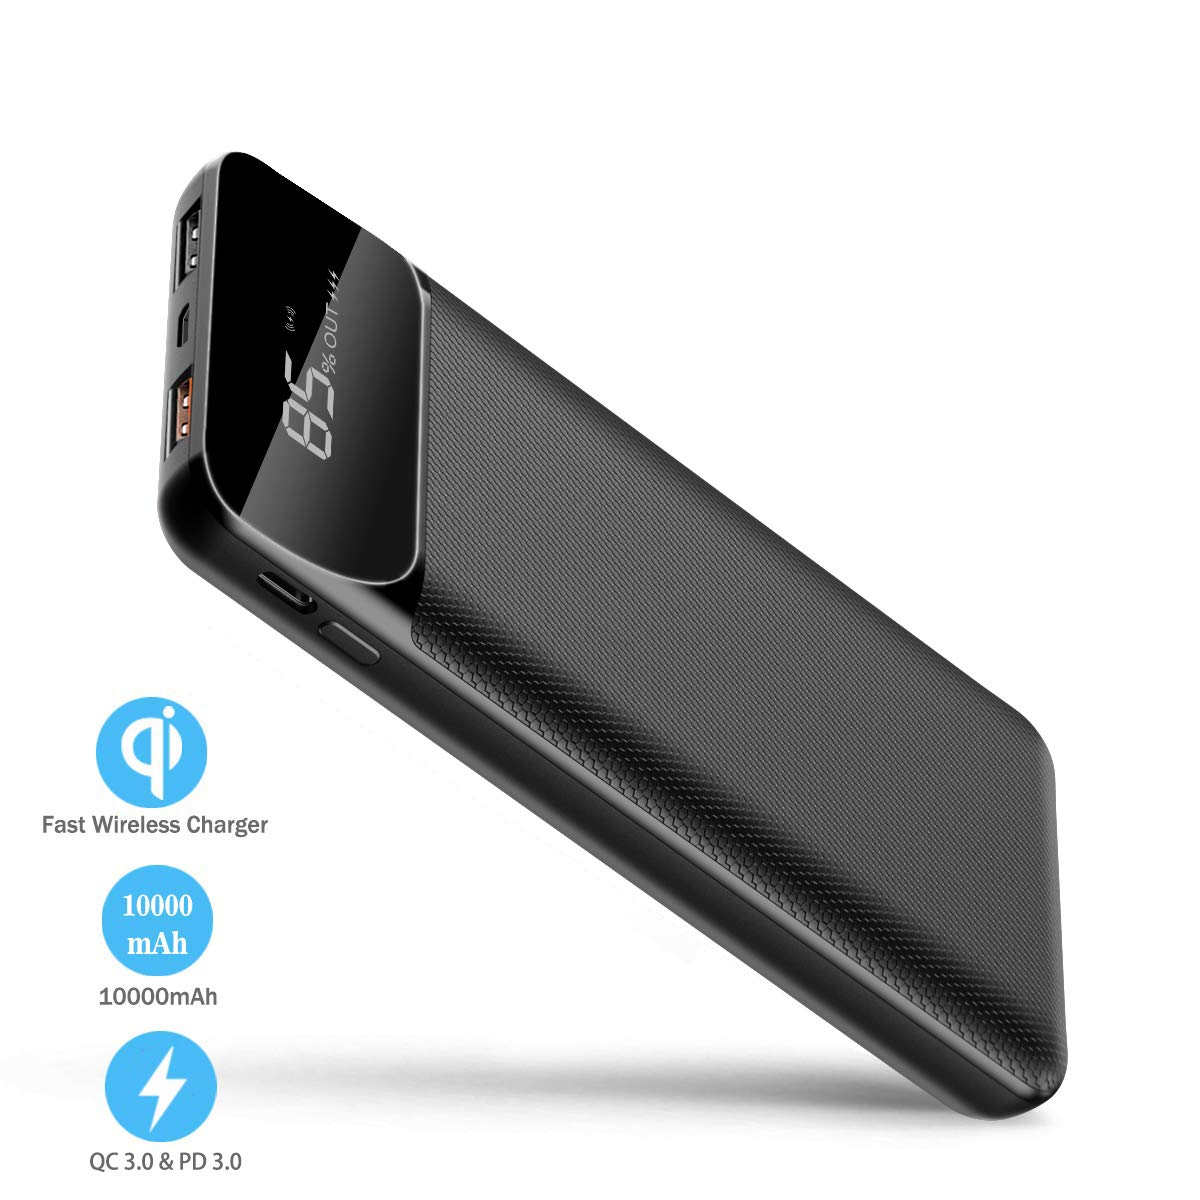 Portable Charger Wireless Power Bank 10000mAh,Hokonui 10W Fast Wireless Charging Portable Charger USB-C Power Bank QC 3.0 and LCD Digital Display Phone Battery Pack for iPhone, iPad, Samsung and More by Hokonui